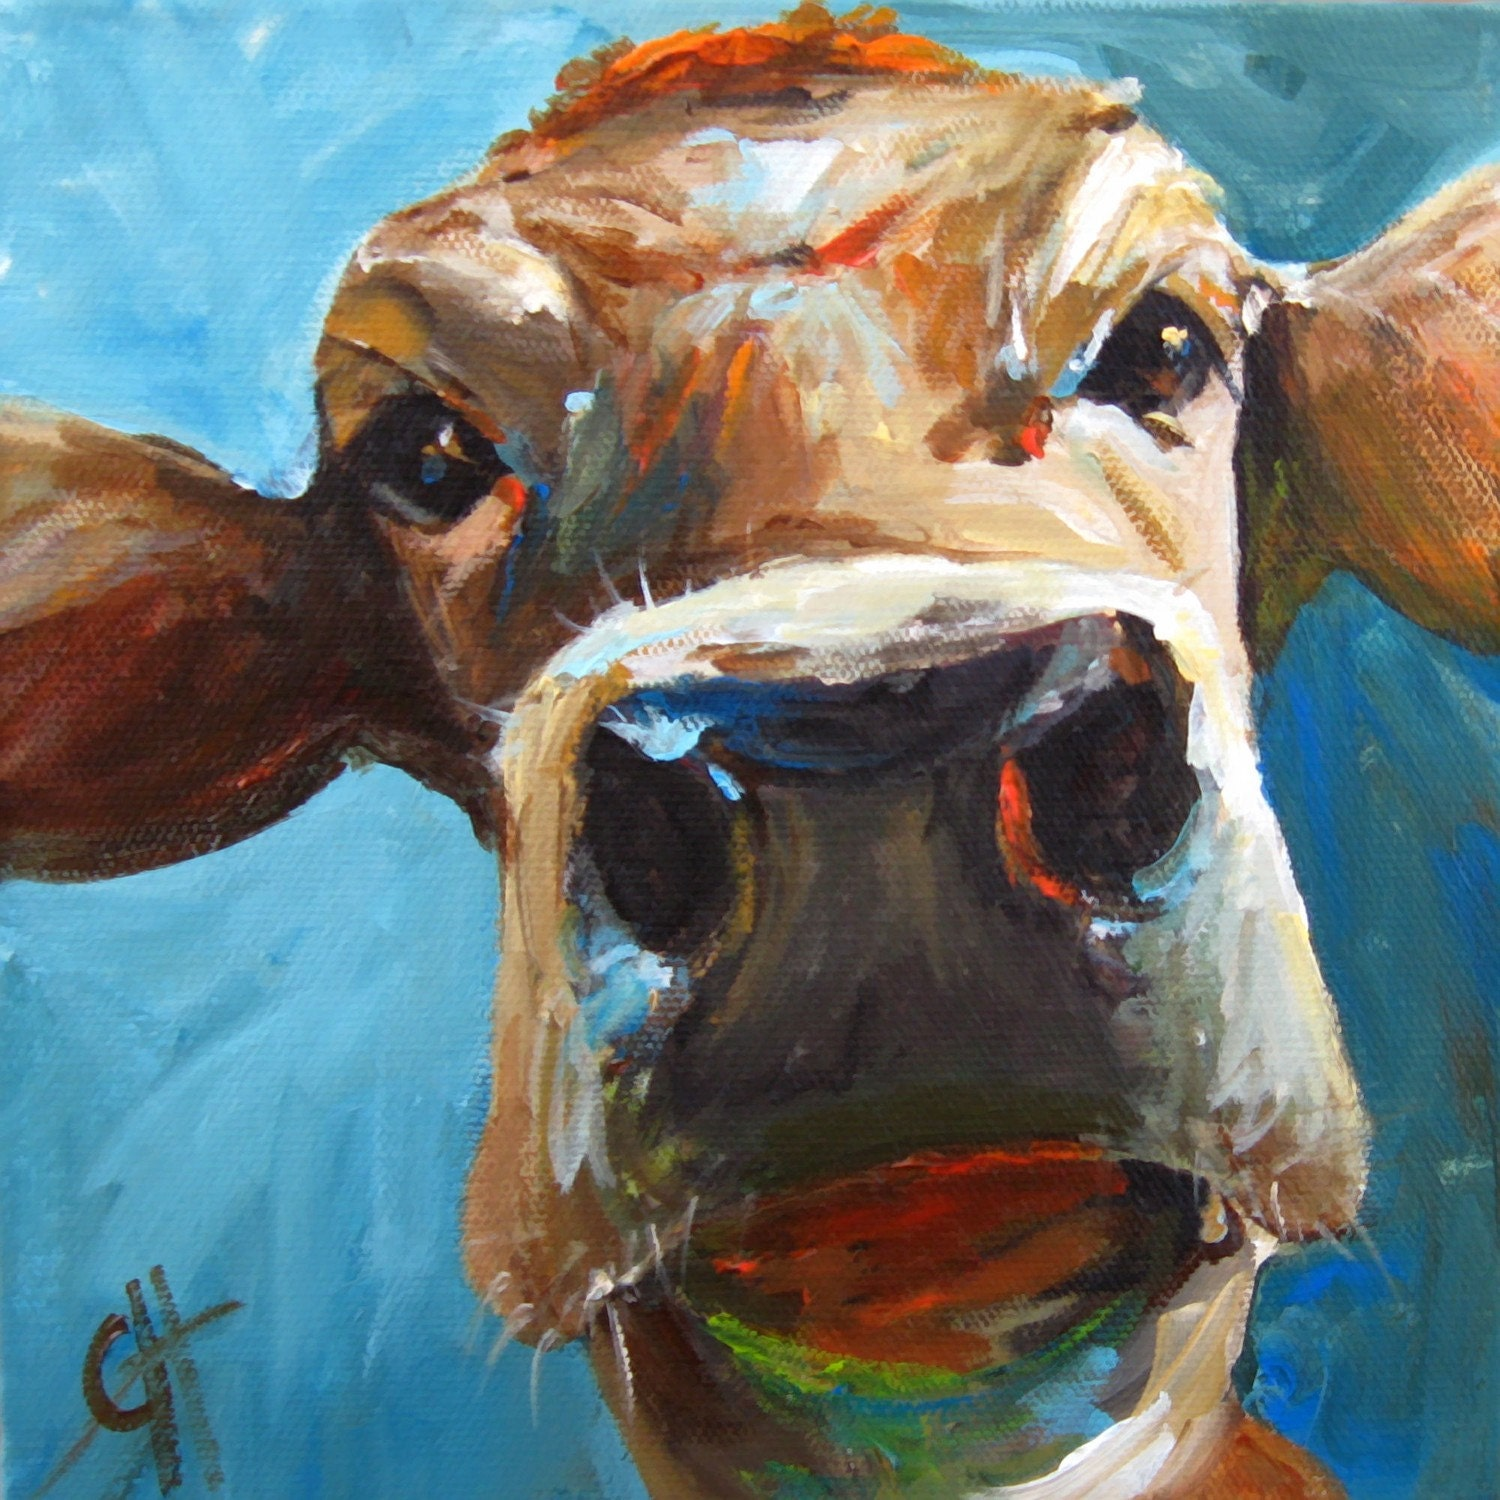 Elise the Cow - 7x7 Giclee Reproduction on stretched canvas